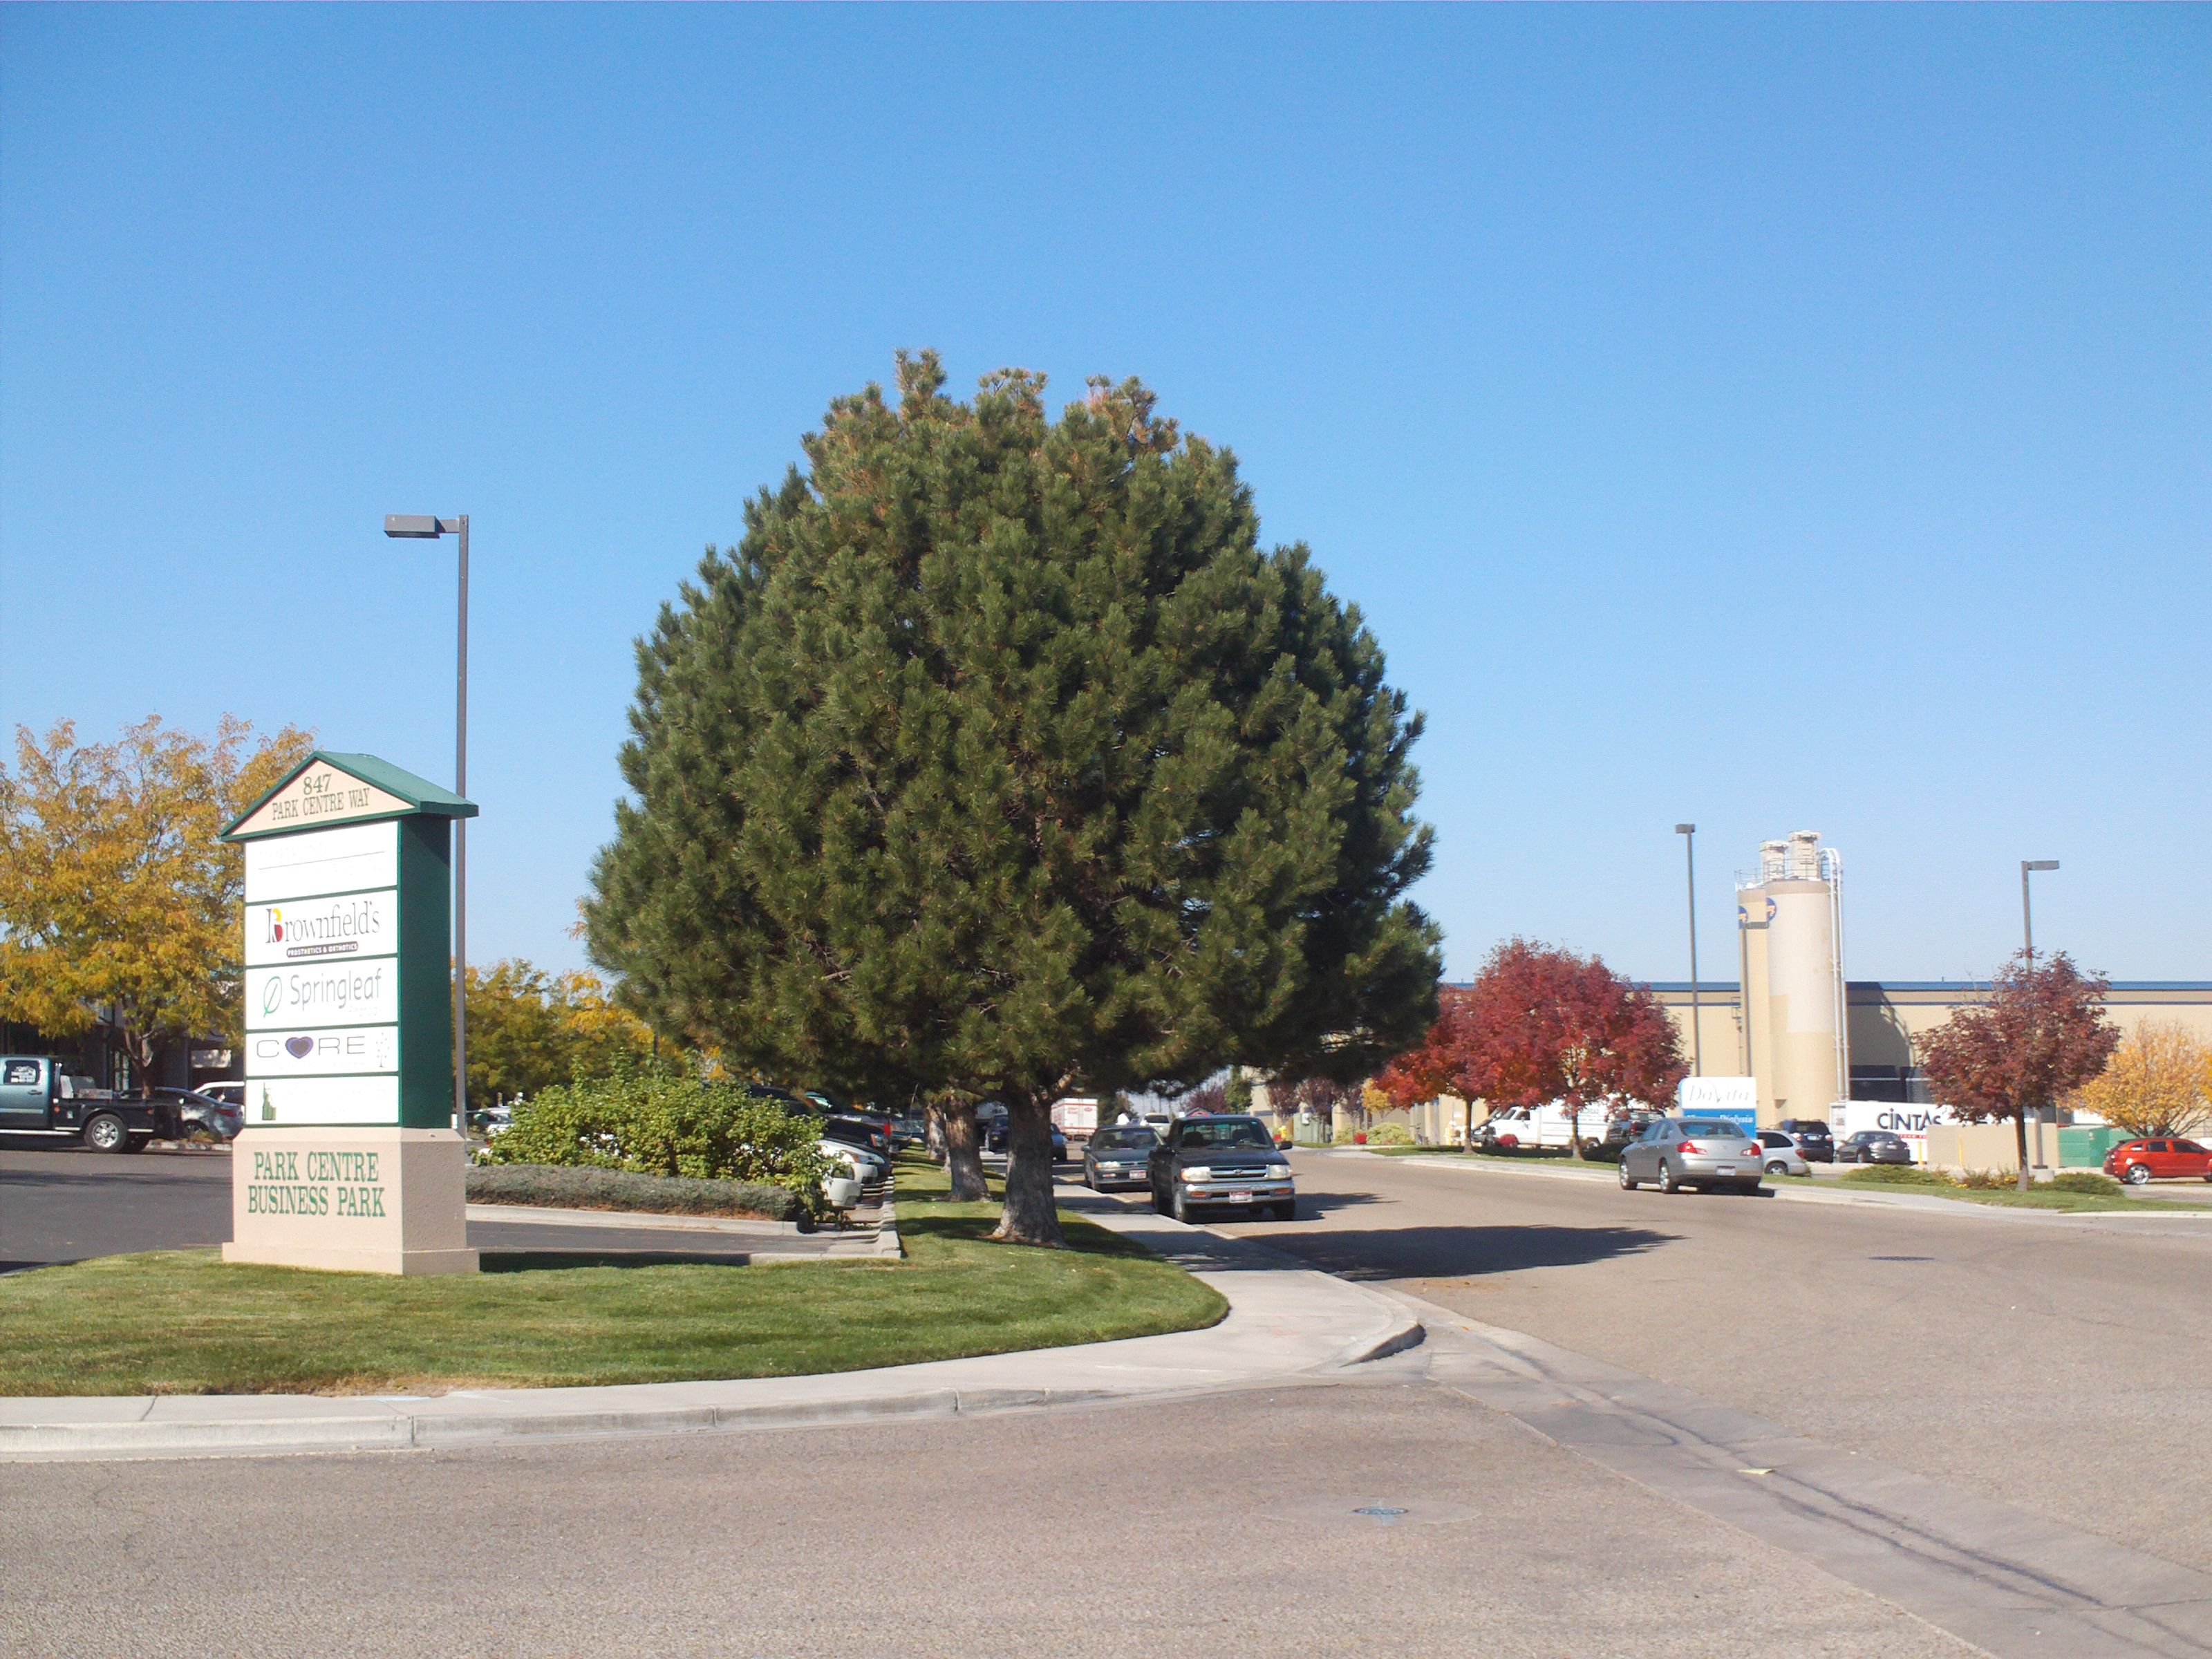 Pin on PTS 1-1000 TREES OF THE TREASURE VALLEY OF BOISE IDAHO